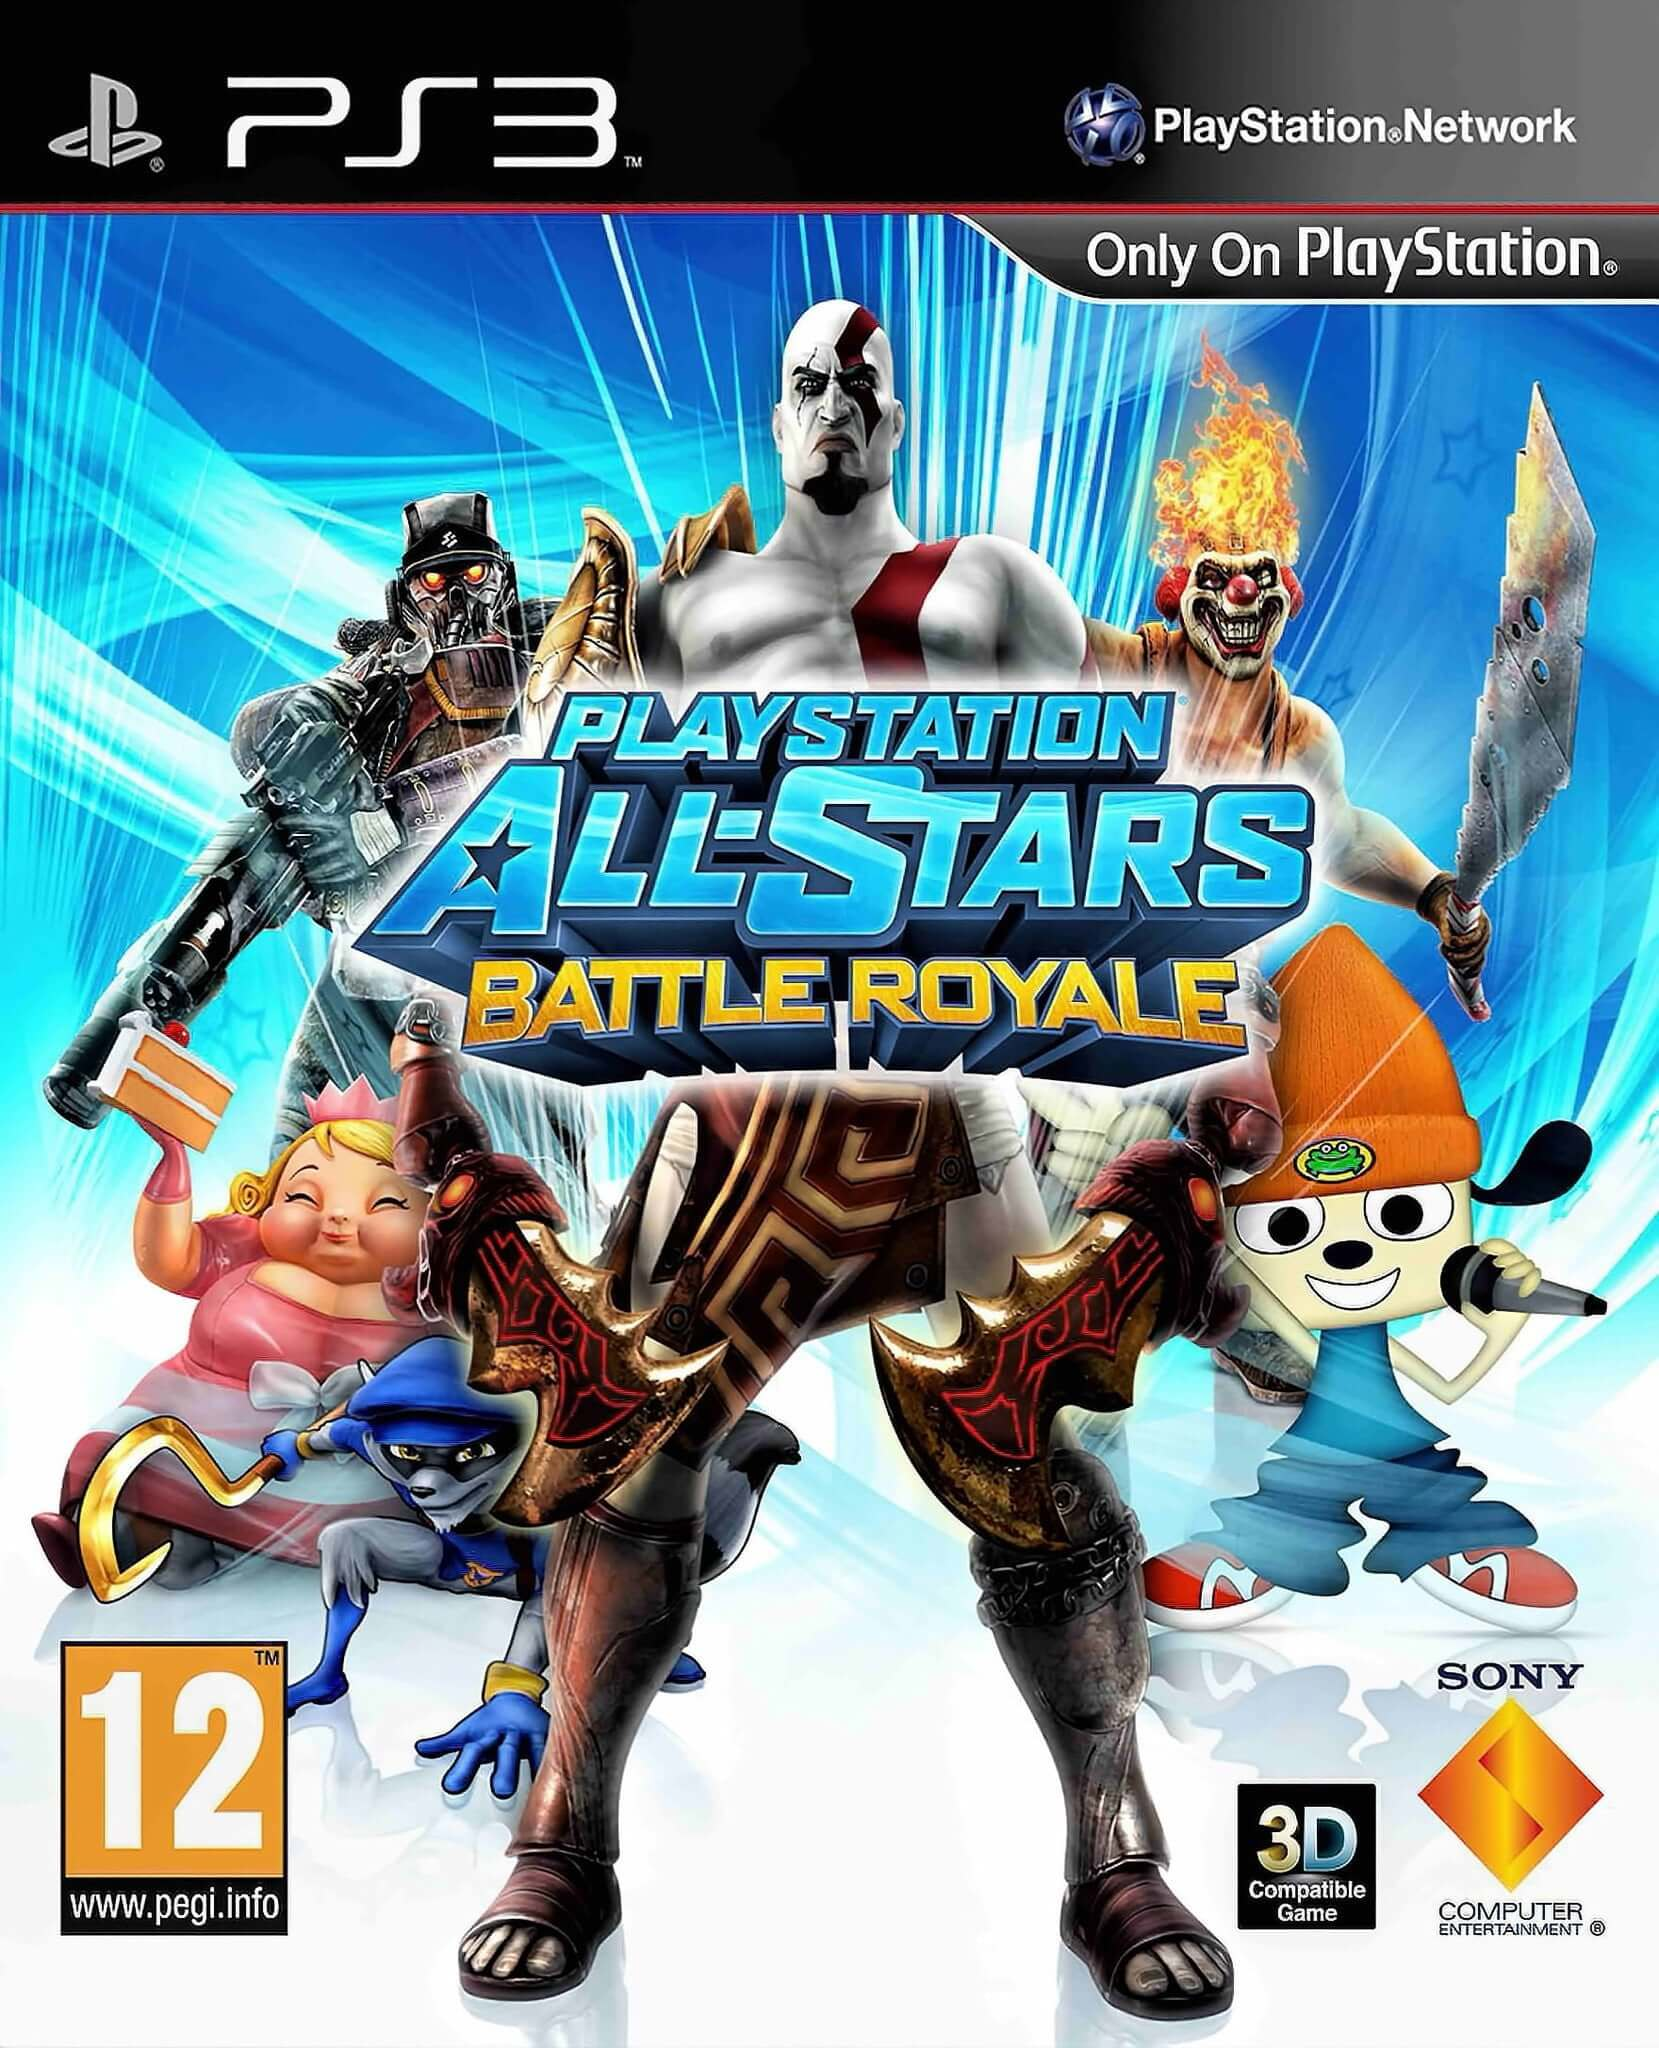 Buy All Stars Battle Royale(PS4) (PS3) PS3 Game in Egypt - Shamy Stores